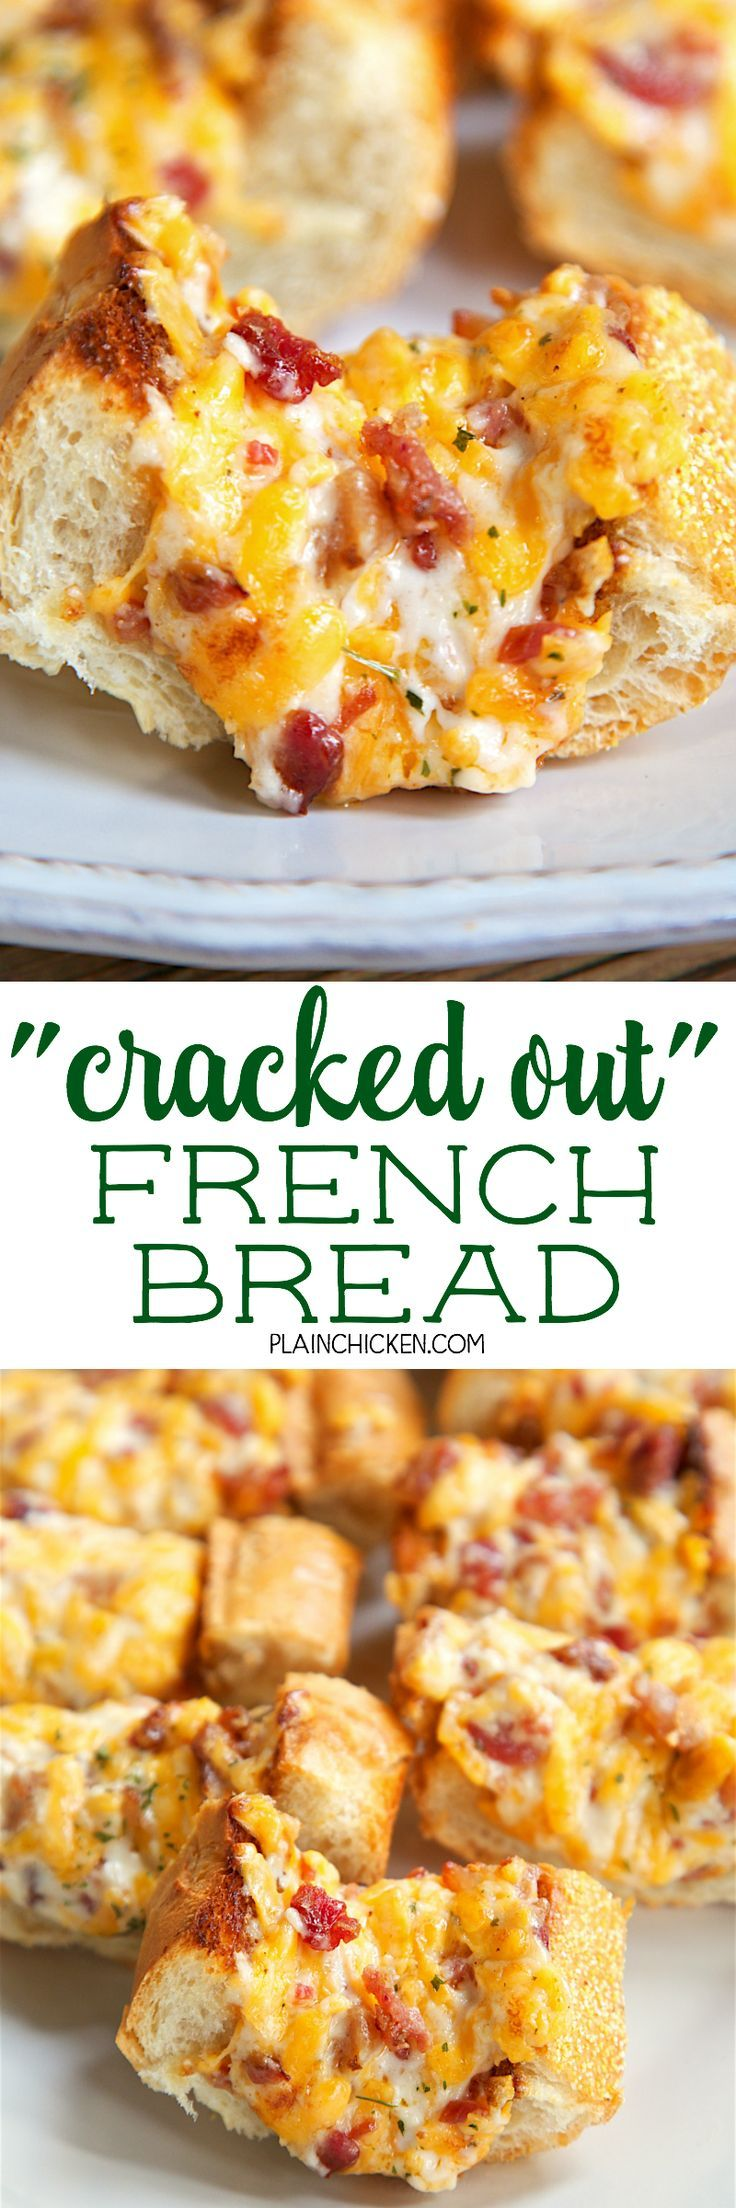 """Cracked Out"" French Bread - crazy addictive! French bread topped with cheddar, bacon and ranch. We could not stop eating this! Serve as a party appetizer or as a side dish to your meal. Either way, this will be gone in a flash!!!"